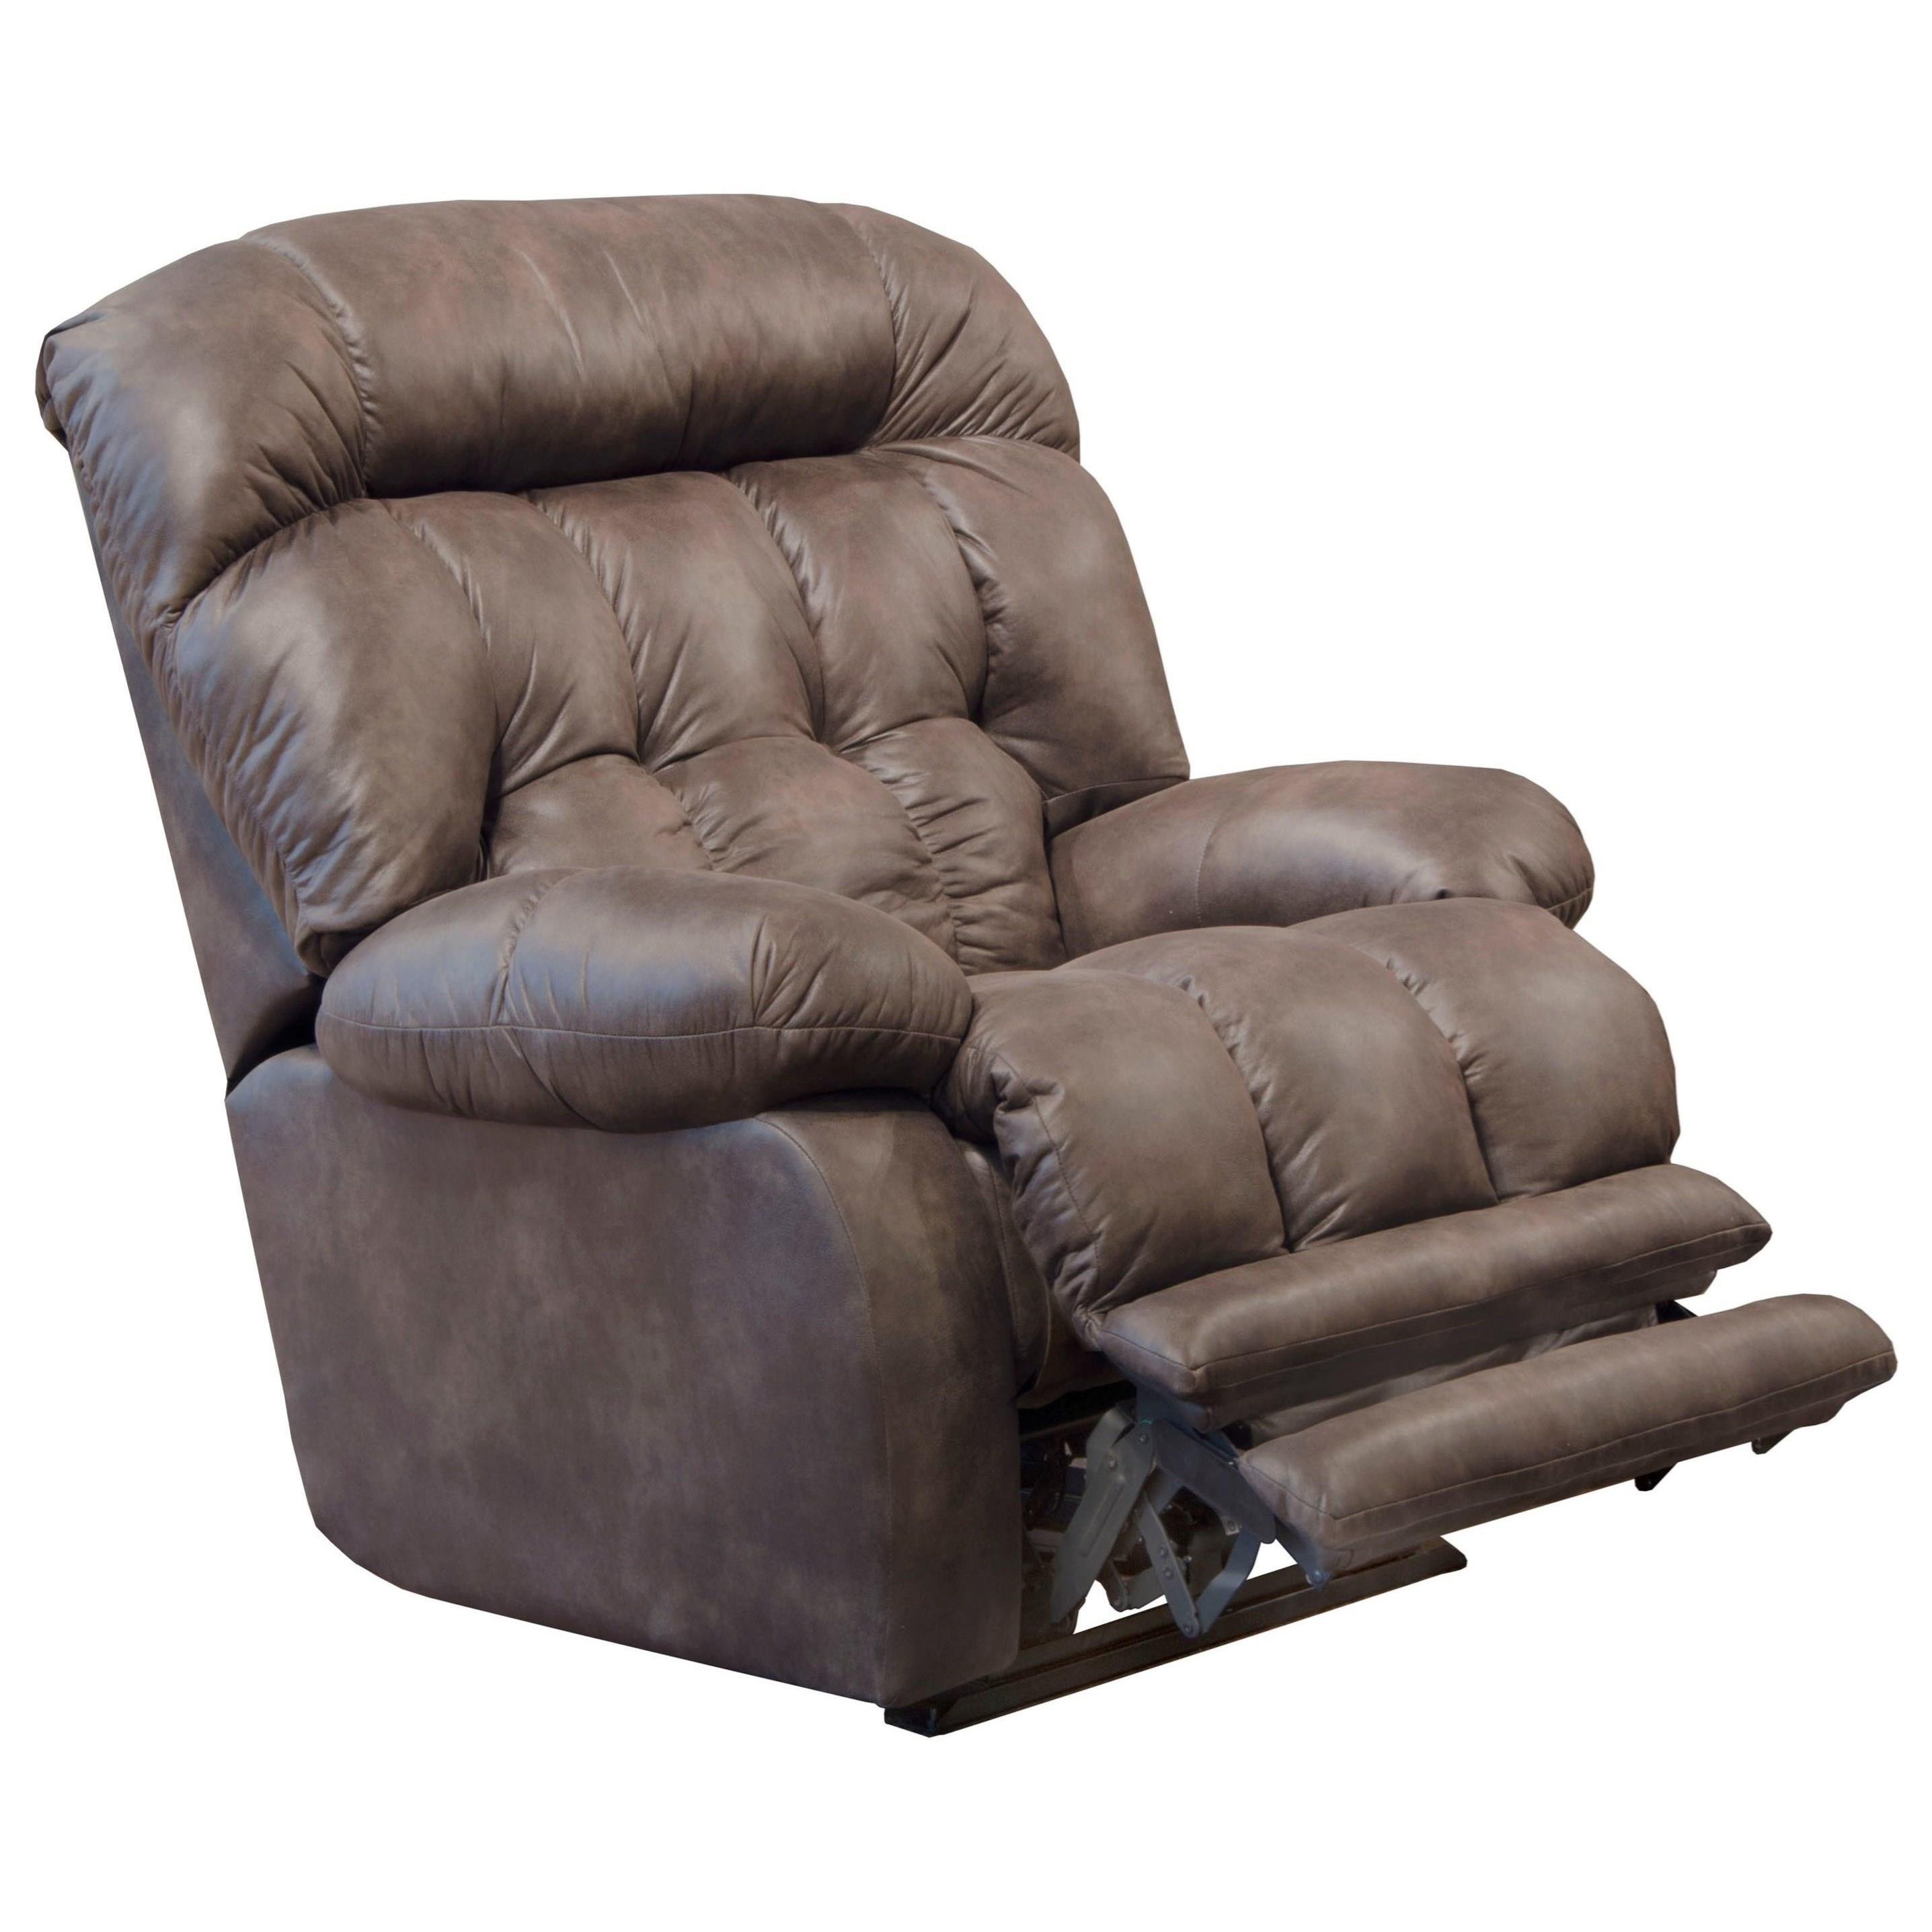 Catnapper Horton 4210 7 Big Amp Tall Lay Flat Recliner With Extended Leg Rest Northeast Factory